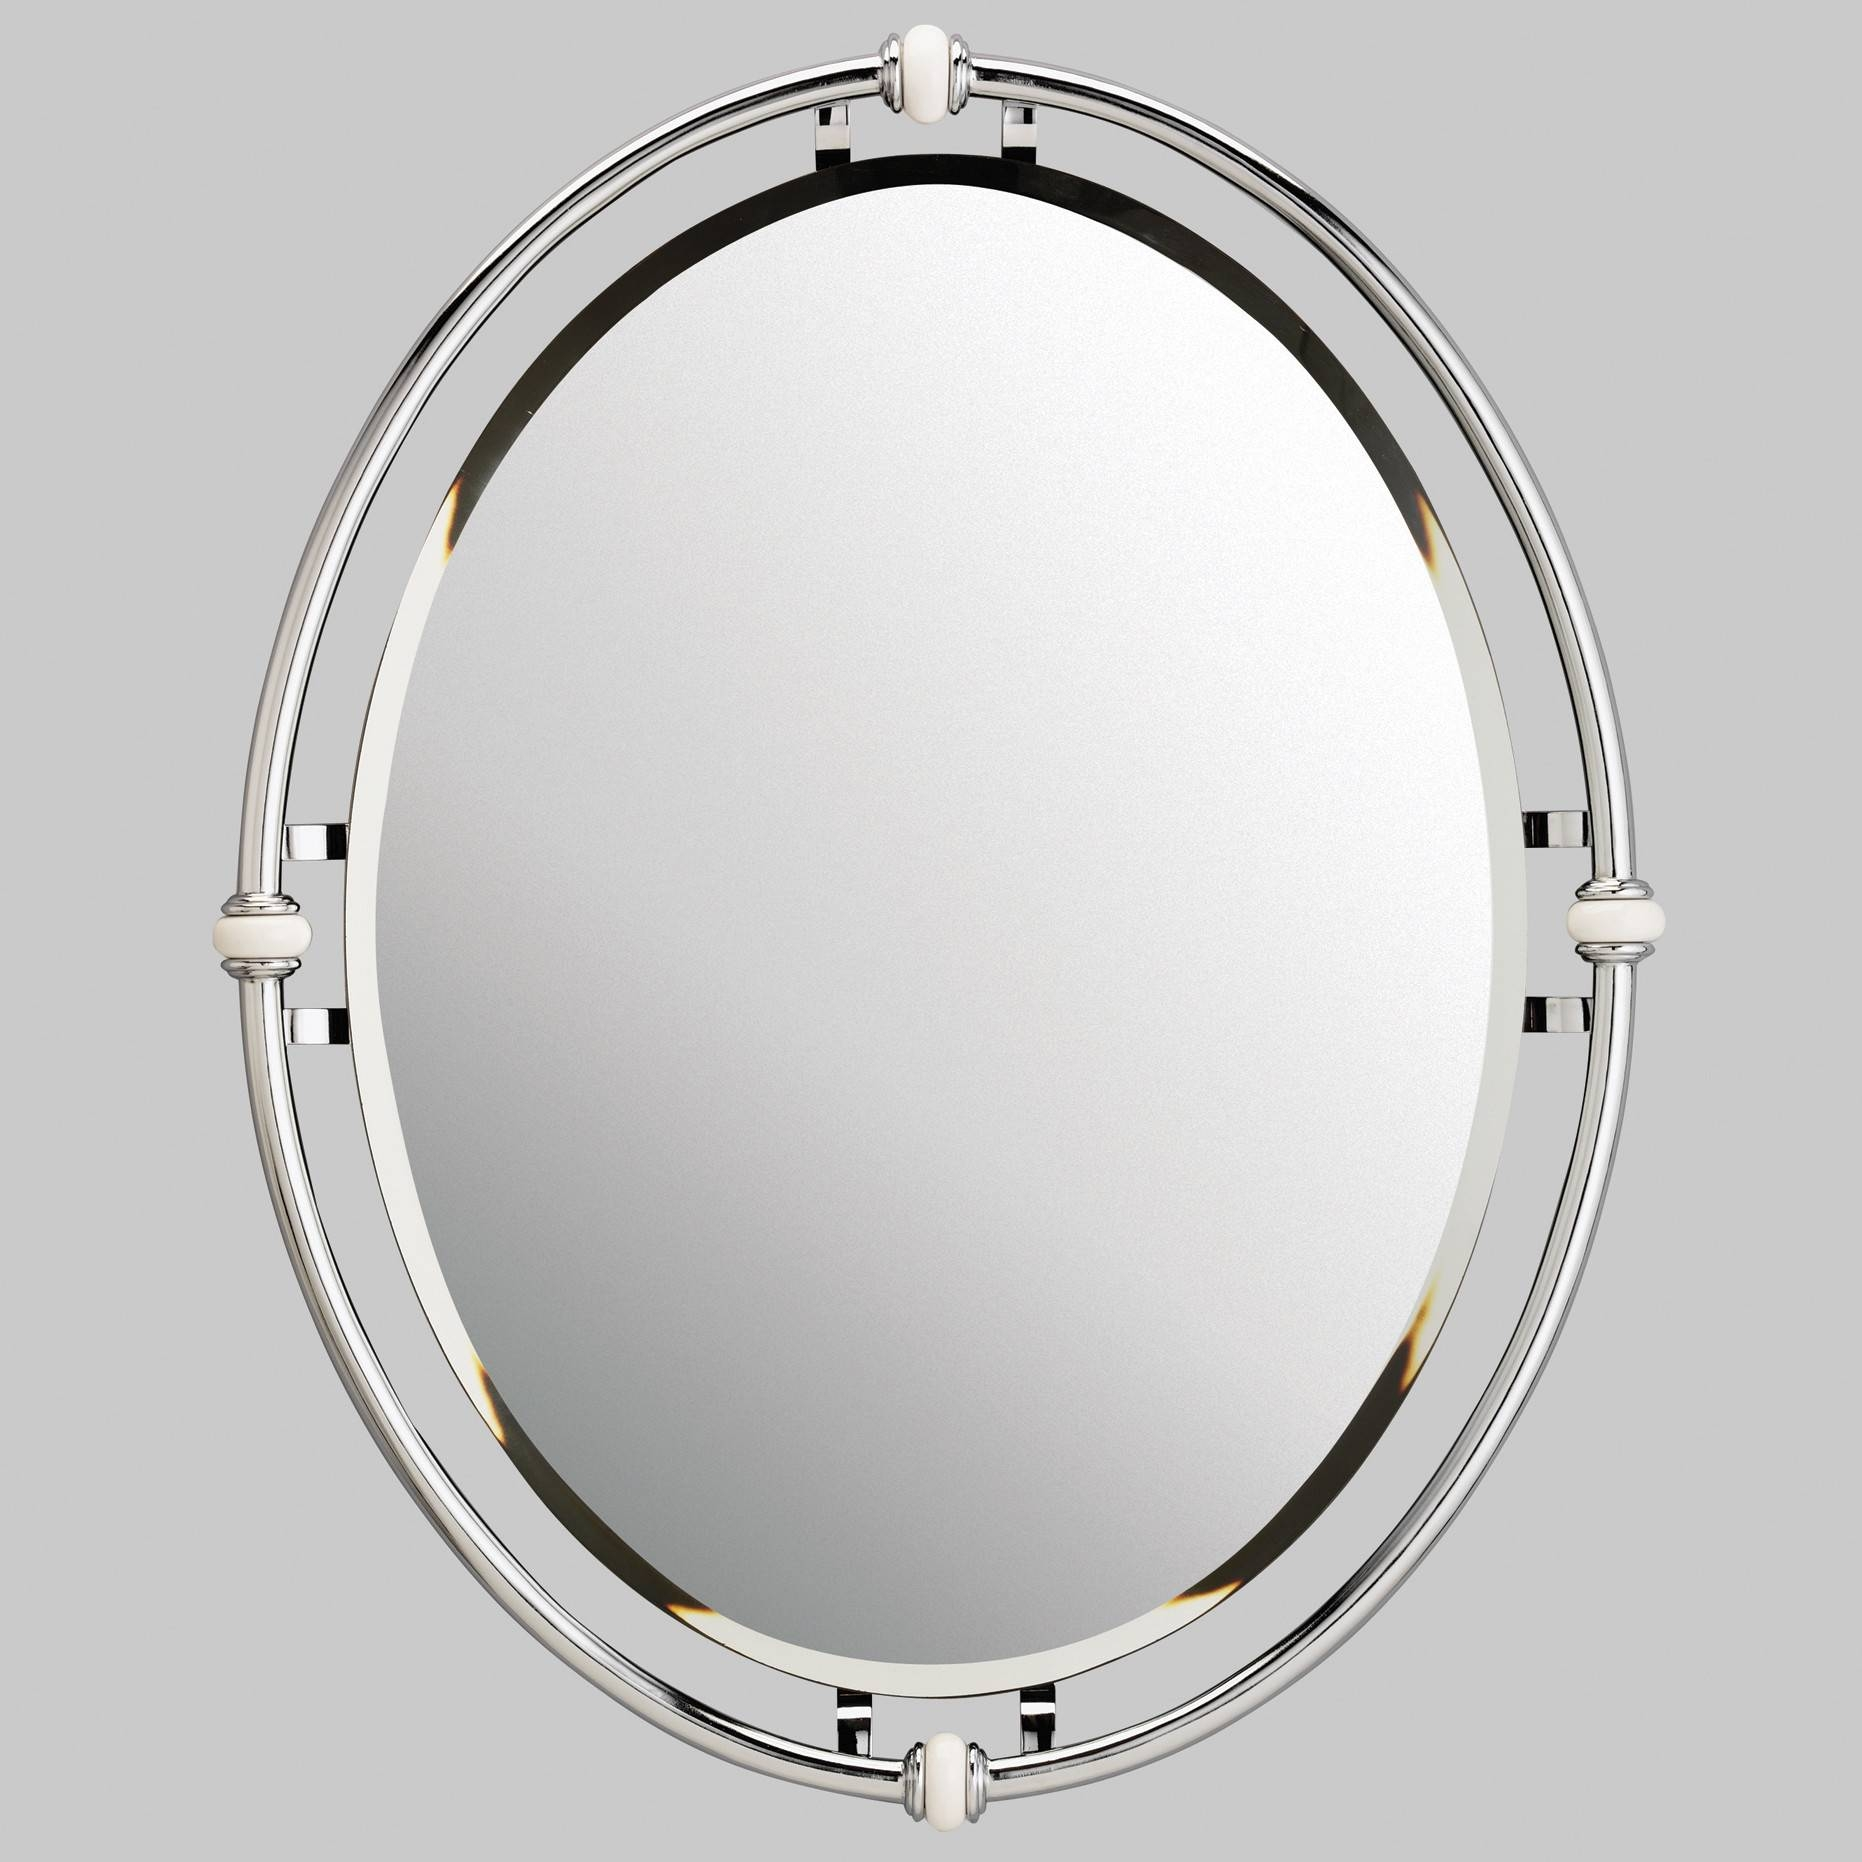 Extraordinary 70+ Wayfair Oval Bathroom Mirrors Inspiration Design for Bevelled Oval Mirrors (Image 4 of 15)